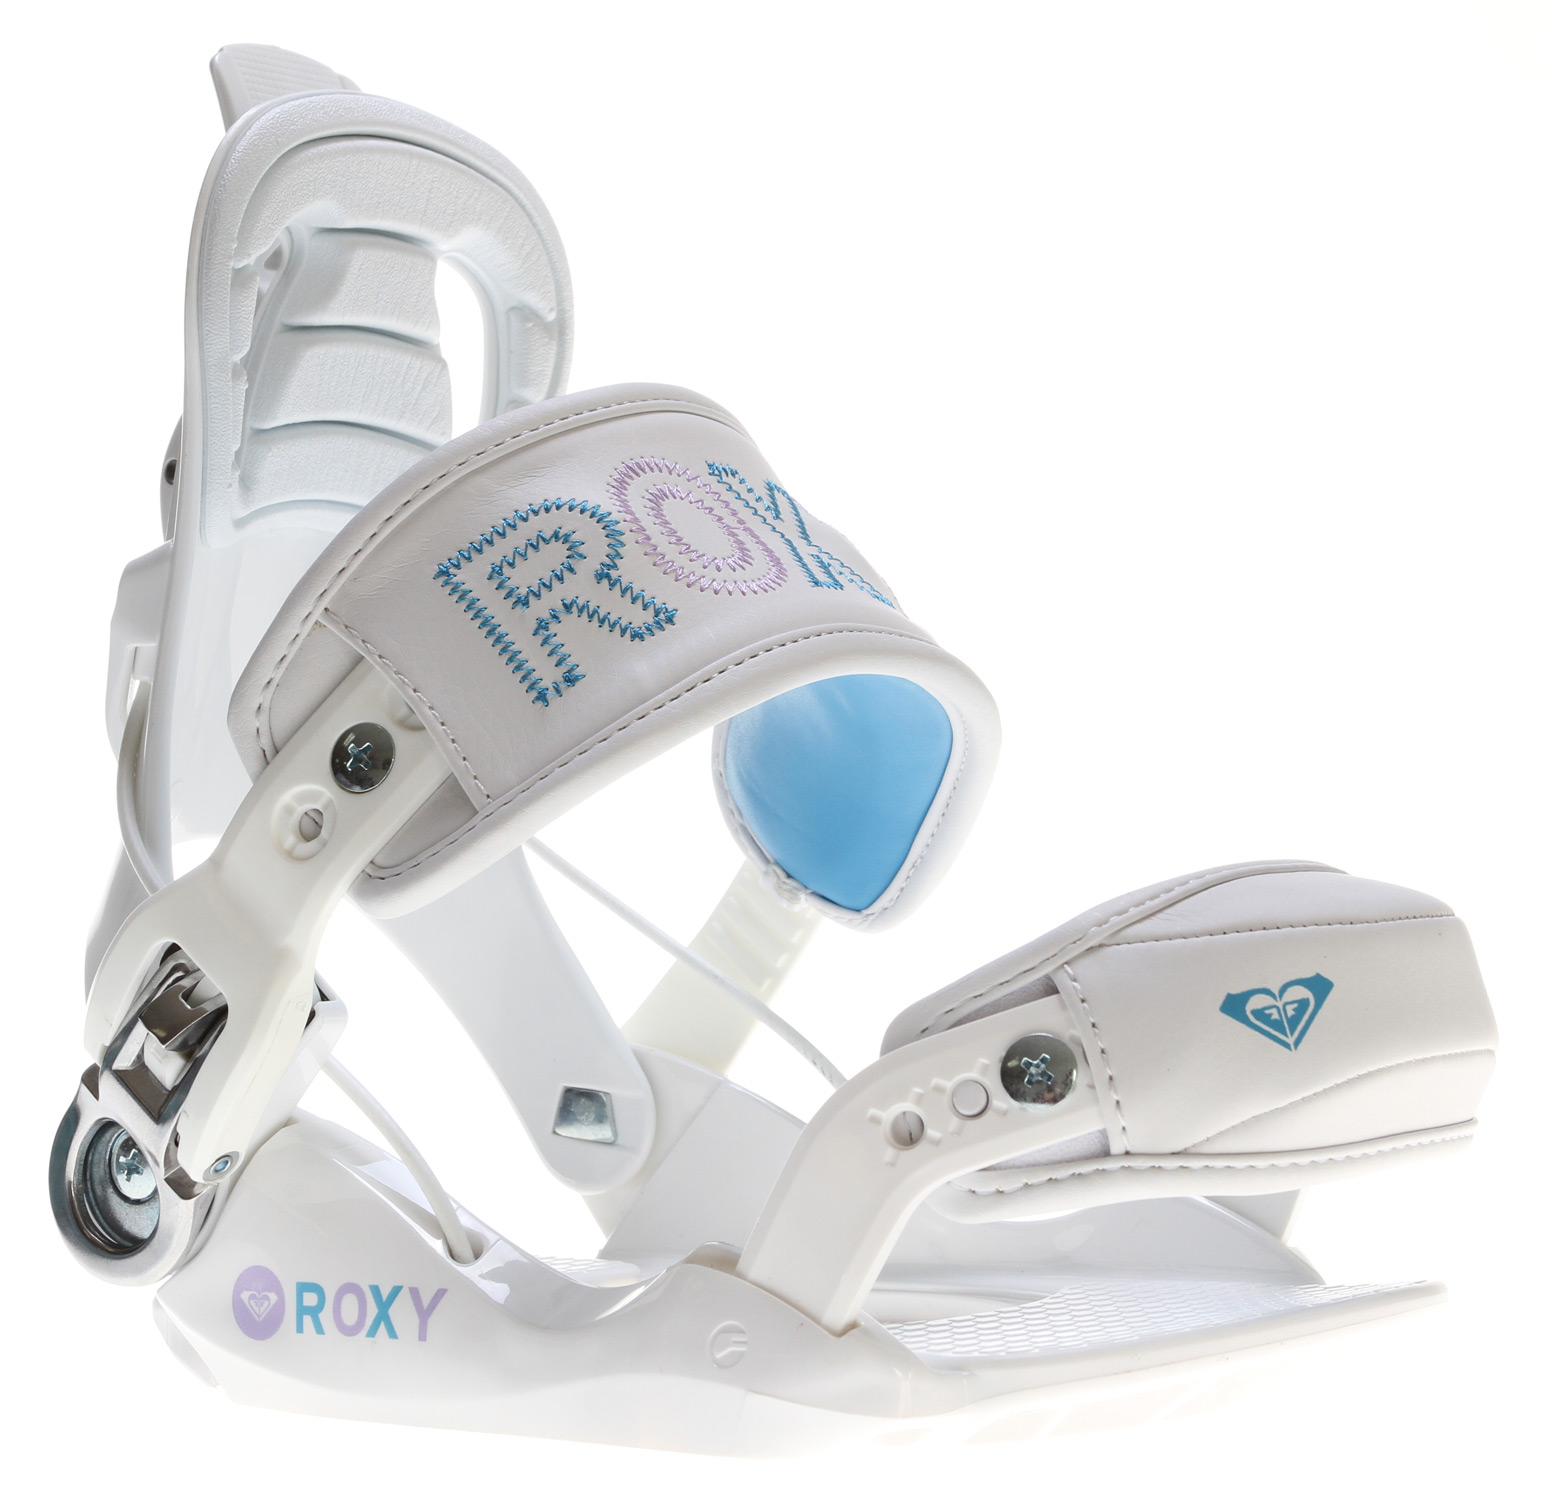 Snowboard Hit the slopes with the Roxy RX Fastec Snowboard Bindings under your feet! These bindings are all about convenience, speed, performance, comfort and style. Aesthetically pleasing, the Roxy RX Fastec Snowboard Bindings feature a reclining highback, high speed entry and exit system, and an easy to use forward lean adjustment. The size adjustable high back, chair lift relief buckle and 3D ankle and toe strap make these bindings comfortable for every rider who takes them to the mountain. Strap in and feel the responsive power that comes from the Roxy RX Fastec Snowboard Bindings!Key Features of the Roxy RX Fastec Snowboard Bindings:  Convenient Reclining Highback  High Speed entry/ exit  Forward lean adjustment  Contoured EVA  Extra comfortable 3D ankle and toe strap  Anatomical EVA covered highback pad  FLEX: 5  Fast entry/ exit, and high performance  Chair Lift Relief Buckle  Tool-free toe and ankle straps  Size-adjustable highback  Multi-disc for 4, or 3 hole insert patterns - $113.95